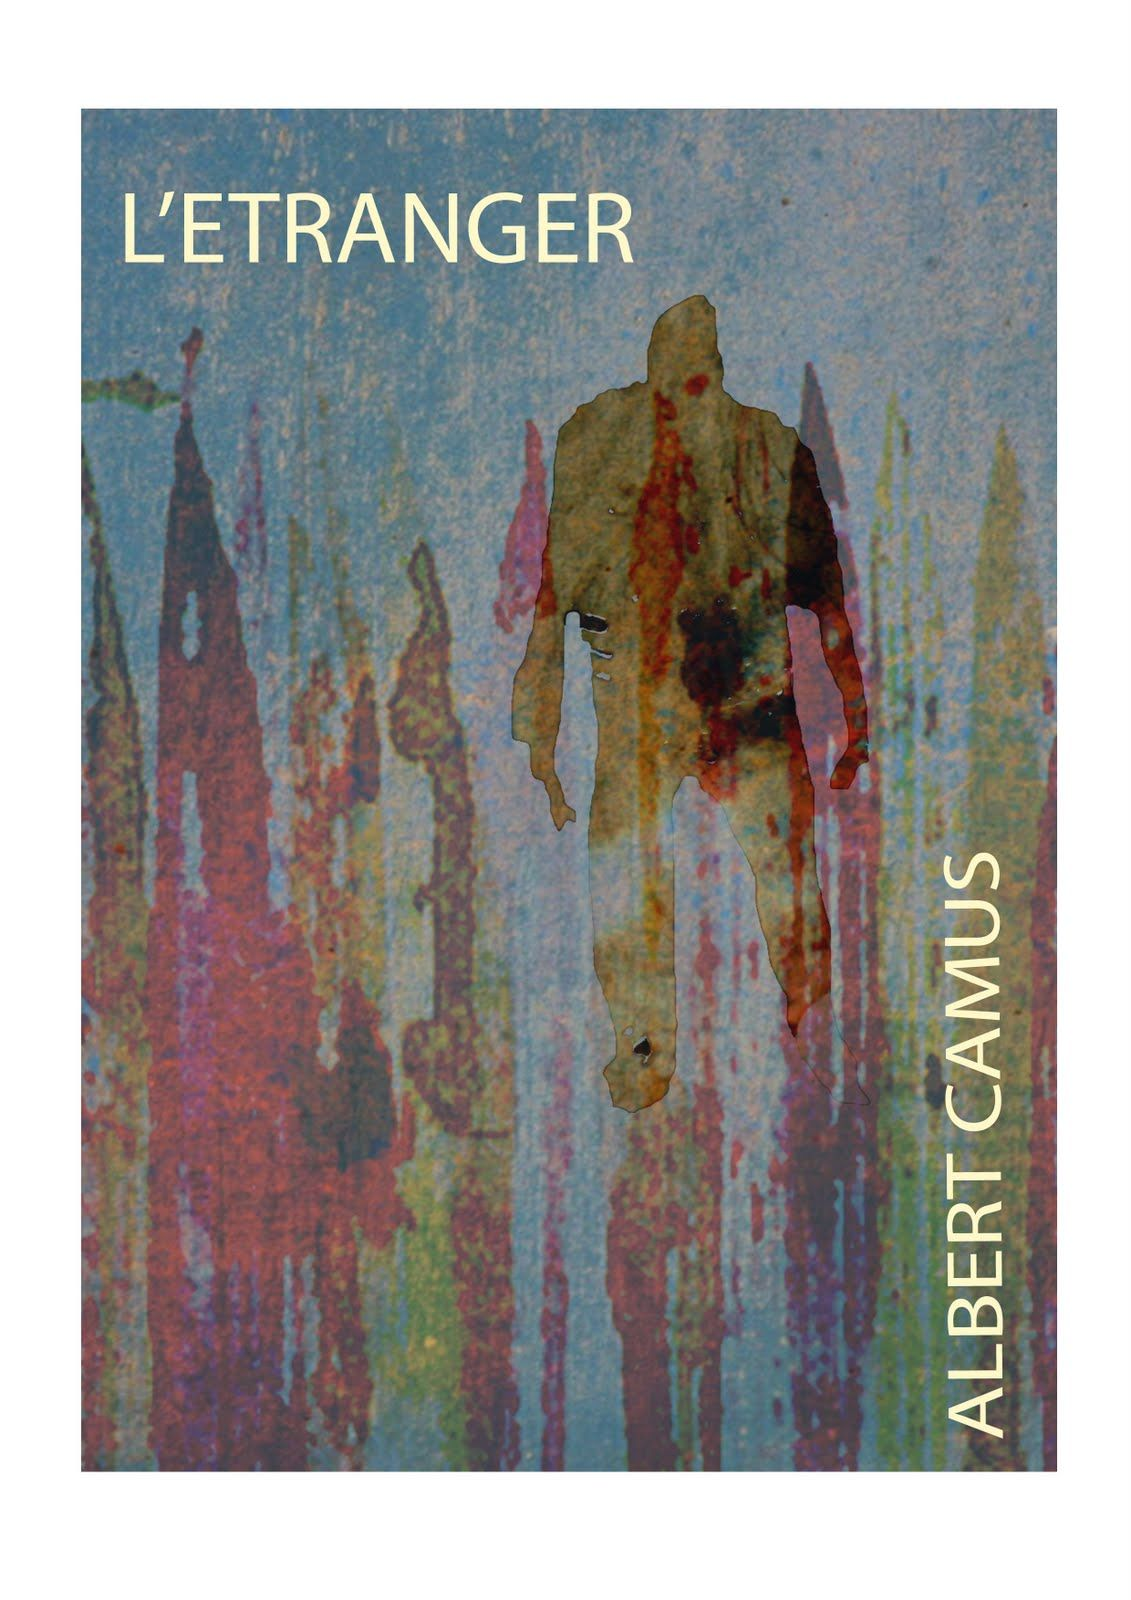 conflict in the stranger by albet Being a stranger to himself leads to the final meaning, which is a stranger to life at the end of the novel meursault is able to understand the meaning of life he was able to do so because he was approaching death, which is an existentialist principle death is the one certainty of life.